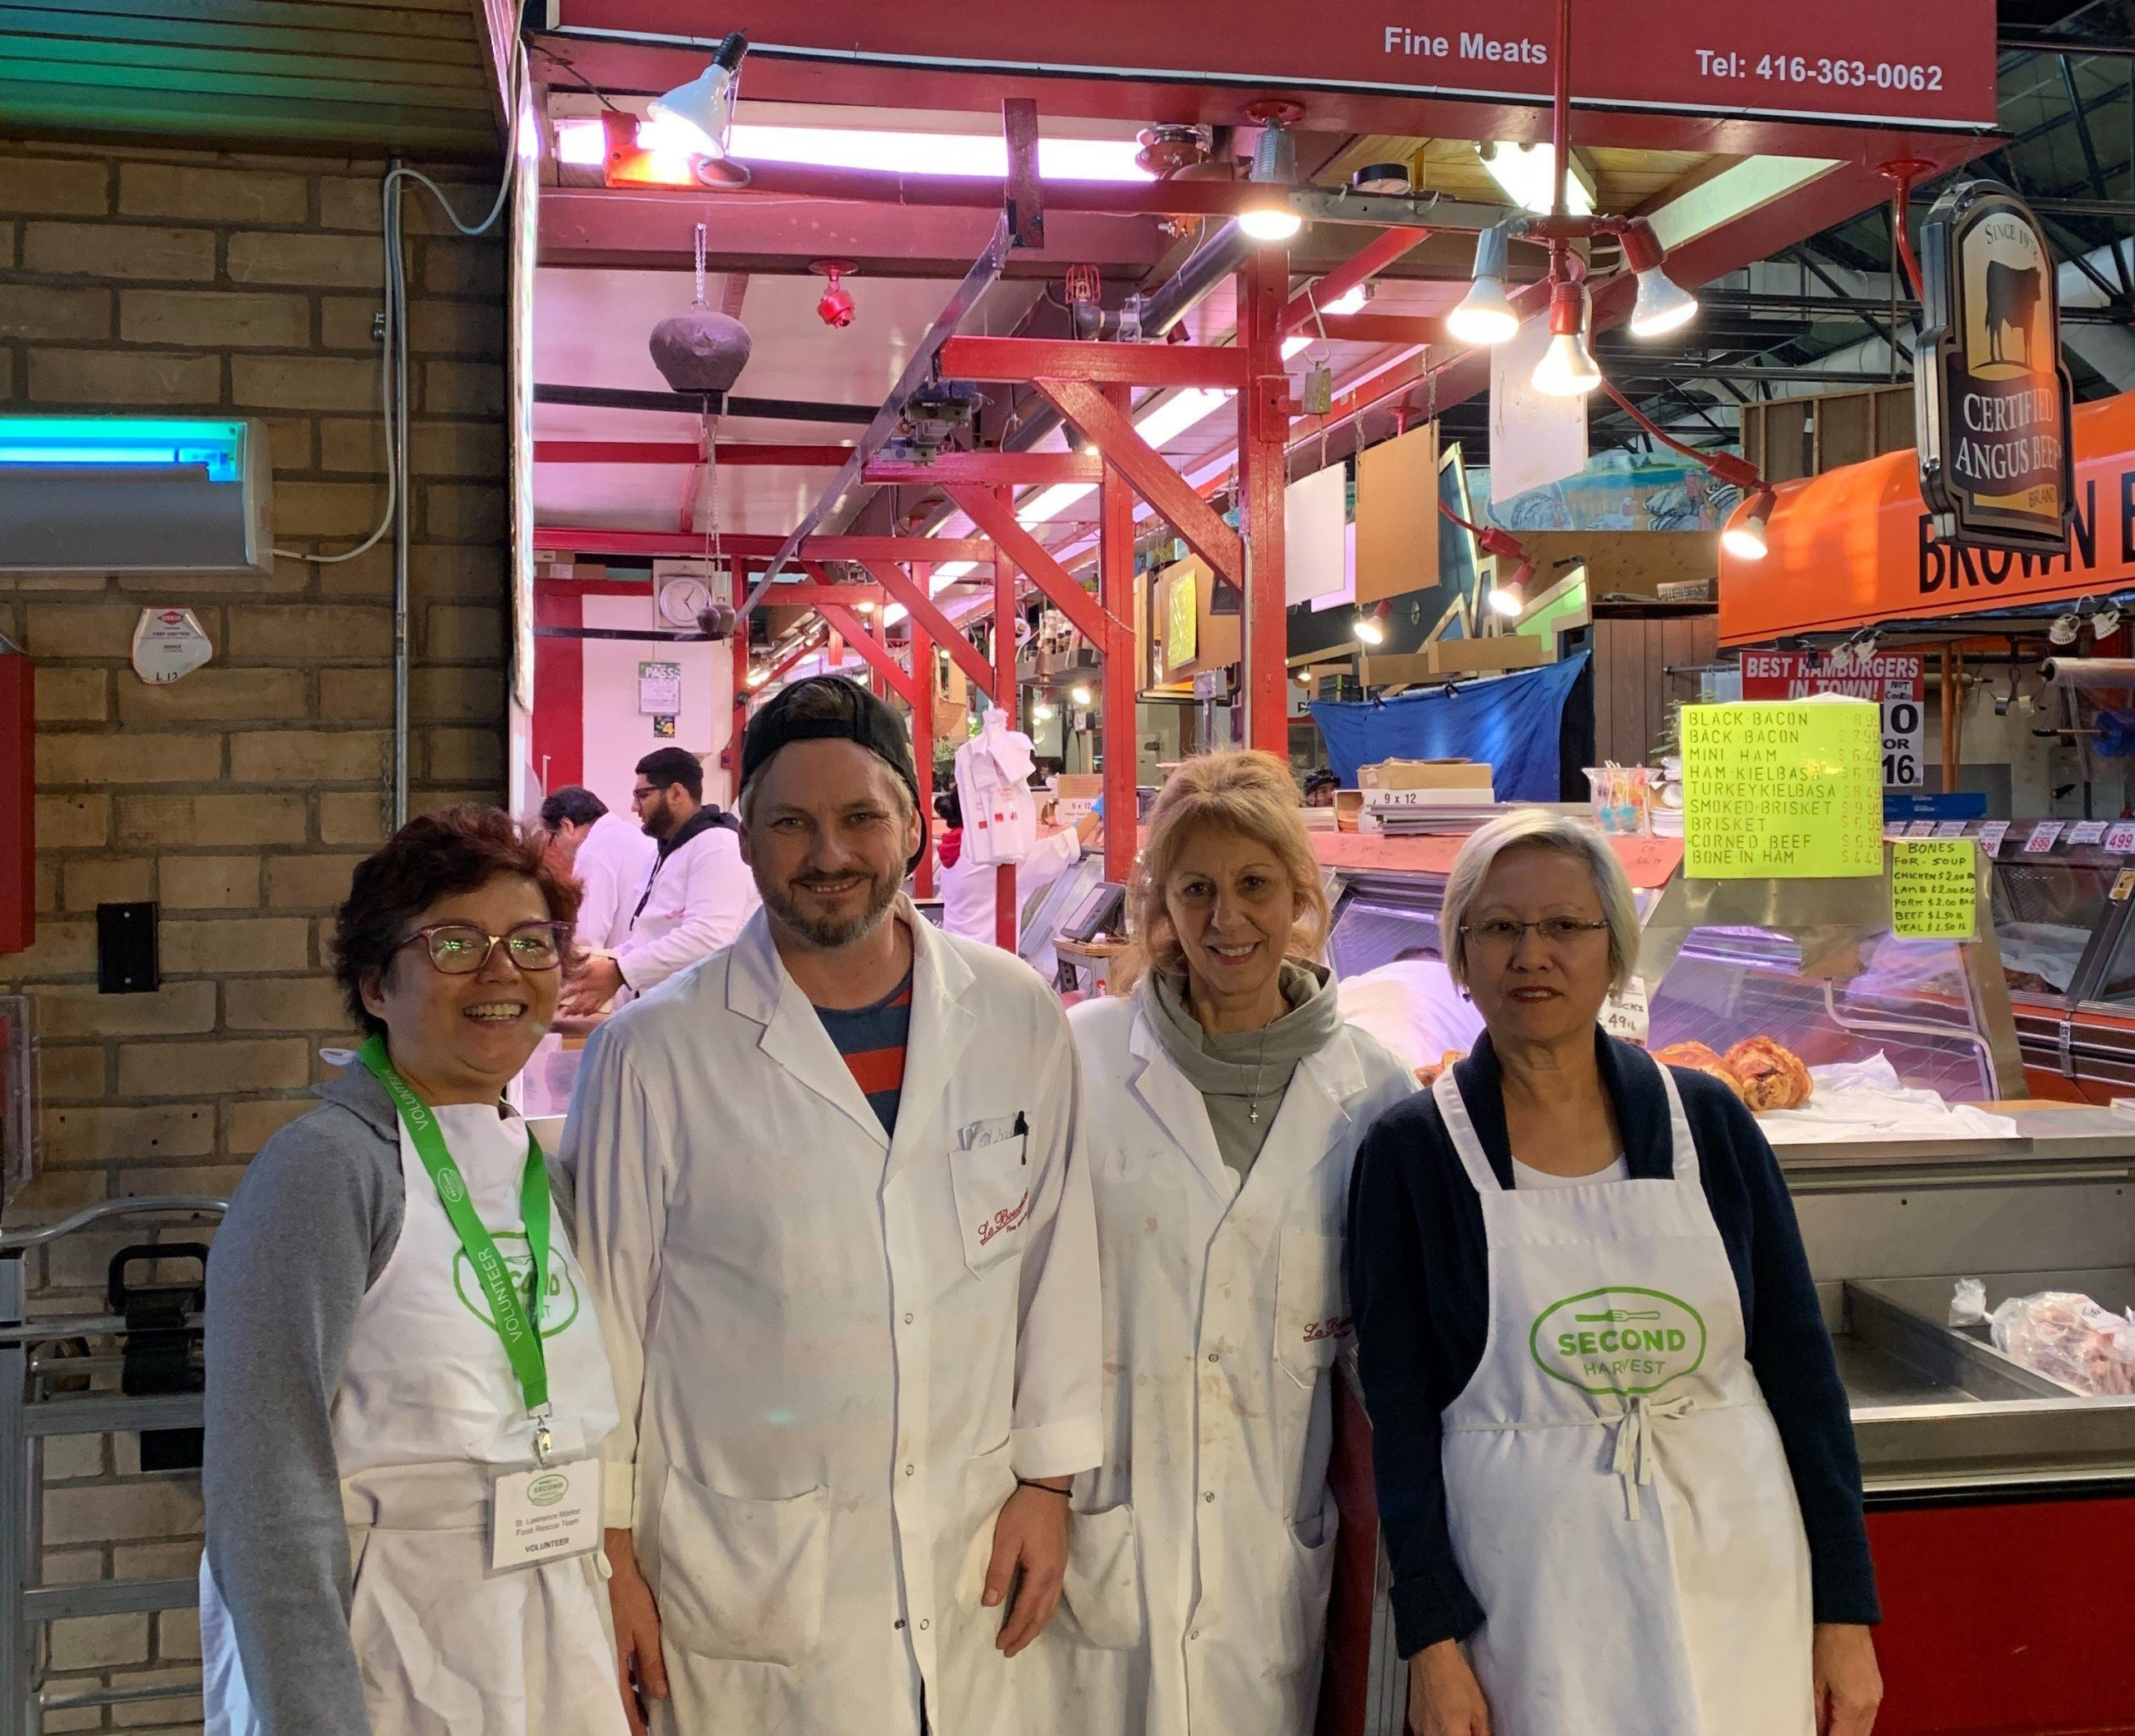 St Lawrence Market food rescue team